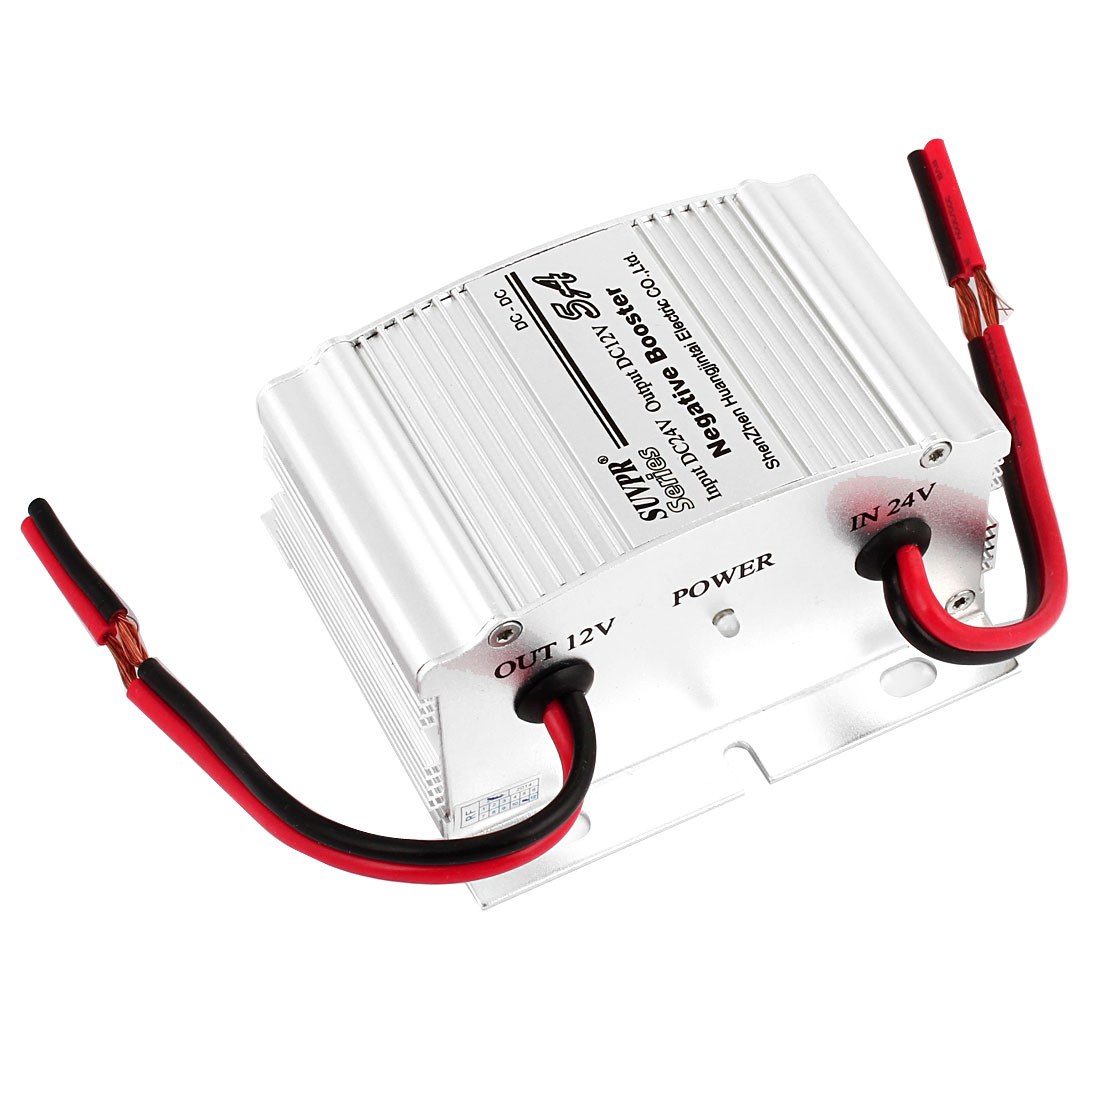 5A DC 24V to DC 12V Negative Booster Electric Car Auto Power Inverter Silver Tone